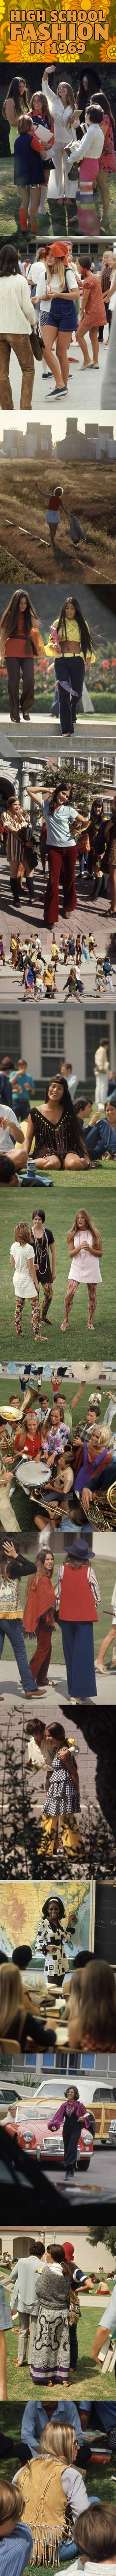 High School Fashion In 1969… I love this so much! Officially adopting the 60's/70's style.